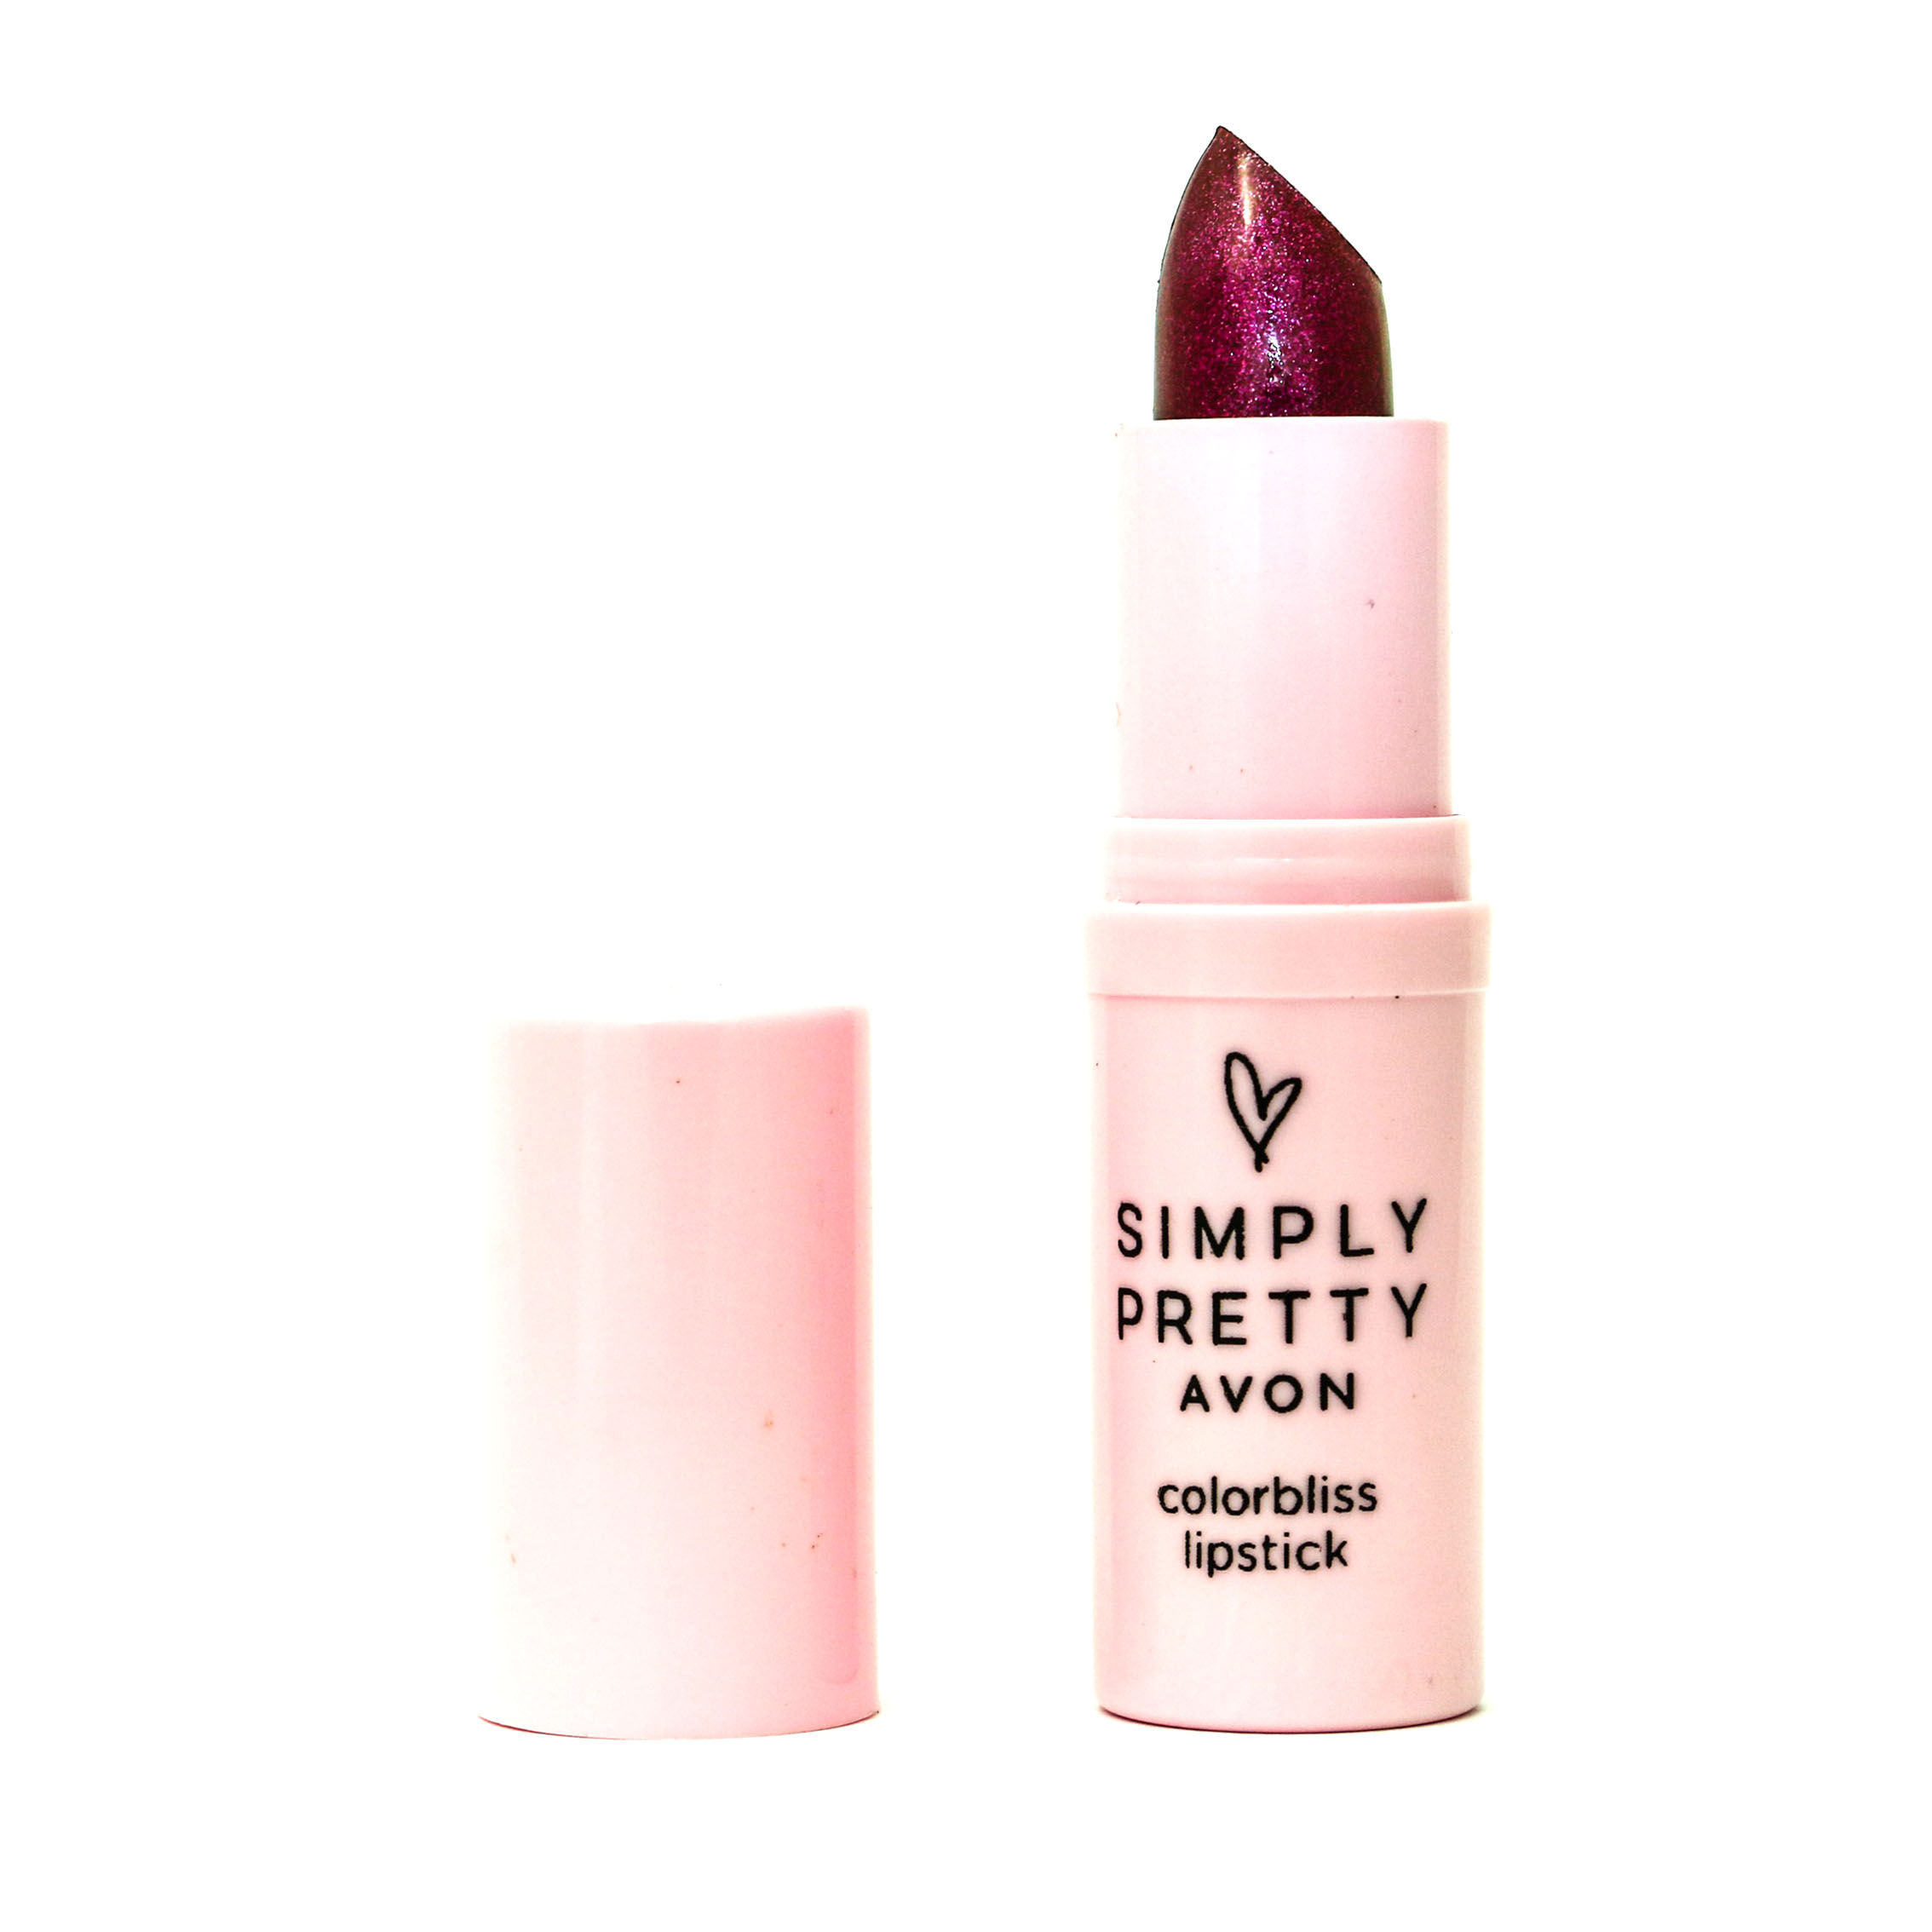 Simply Pretty Restage Colorbliss Lipstick at Nykaa com